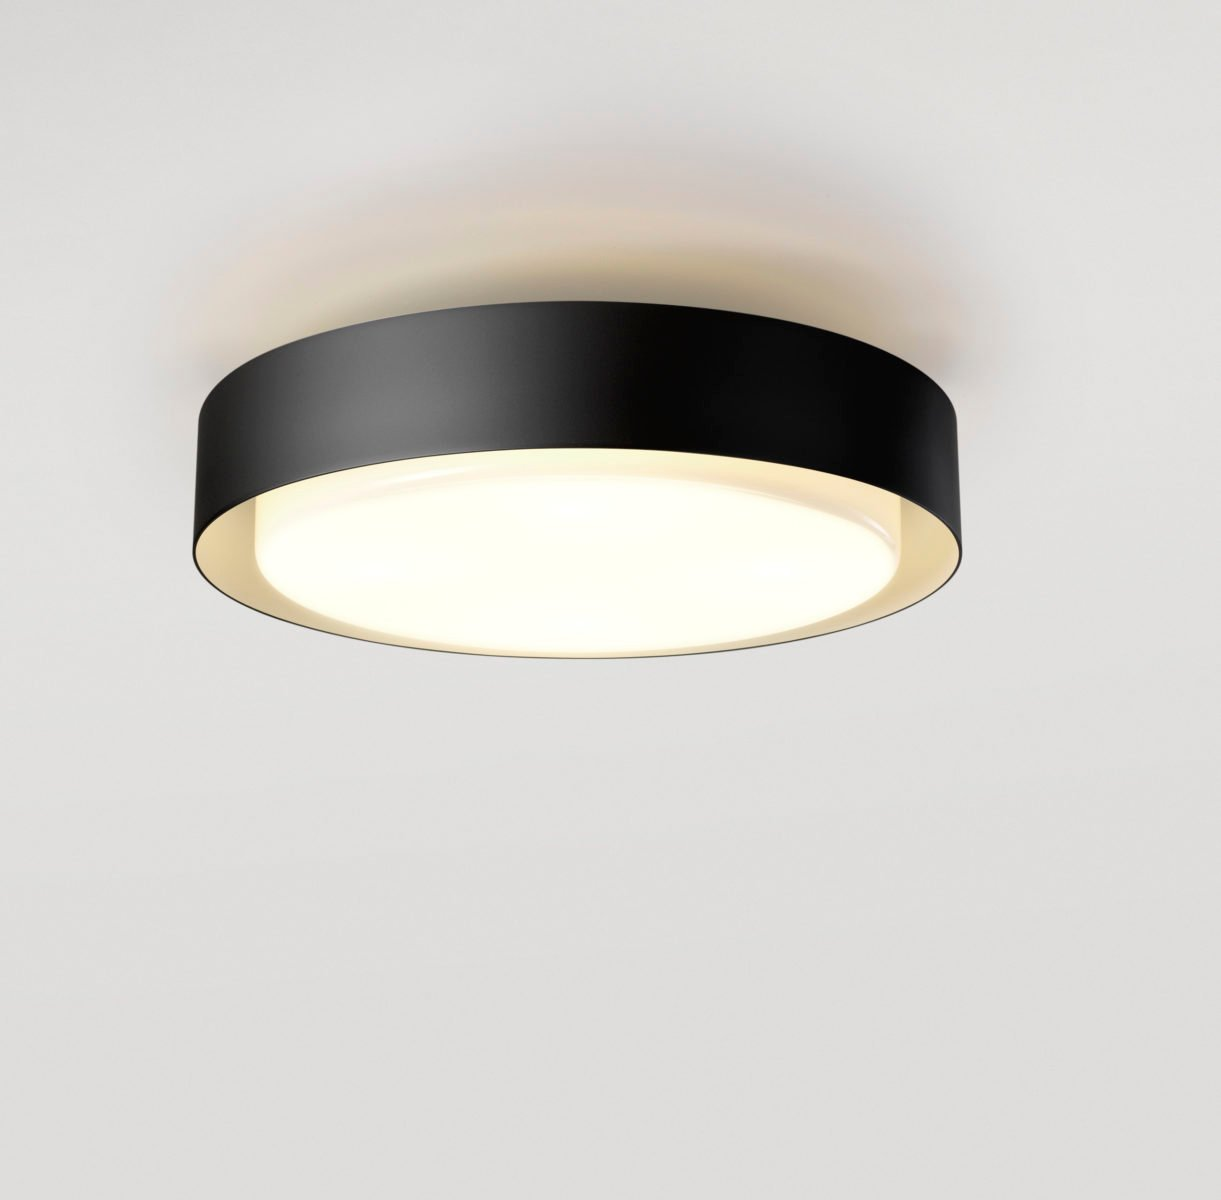 Ceiling Lamp - Plaff-on!